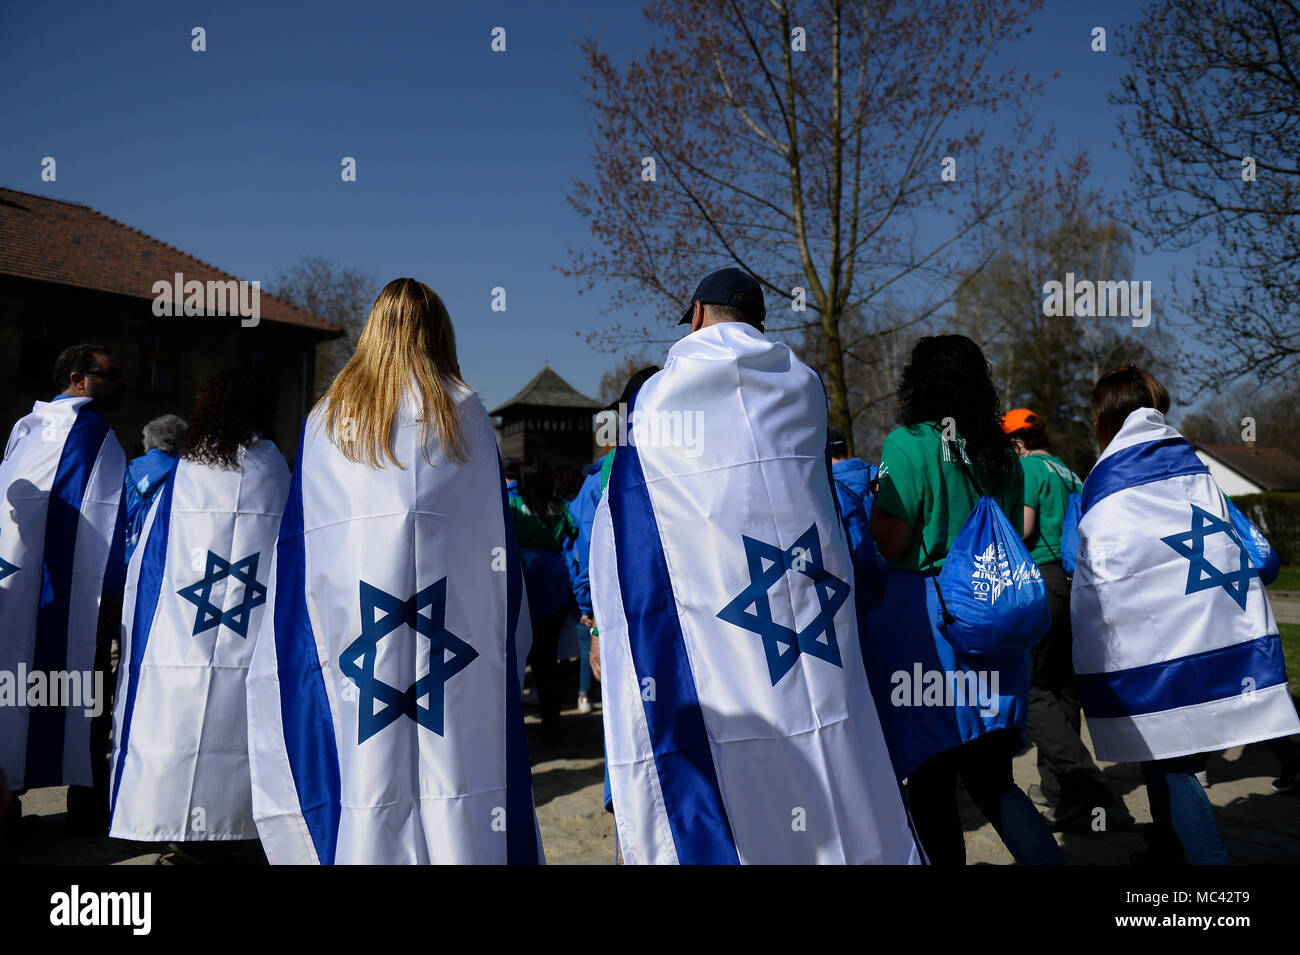 participants-carry-israeli-flags-at-the-former-nazi-german-auschwitz-birkenau-death-camp-during-the-march-of-the-living-at-oswiecim-the-annual-march-honours-holocaust-victims-at-the-former-nazi-german-auschwitz-birkenau-death-camp-in-southern-poland-MC42T9.jpg